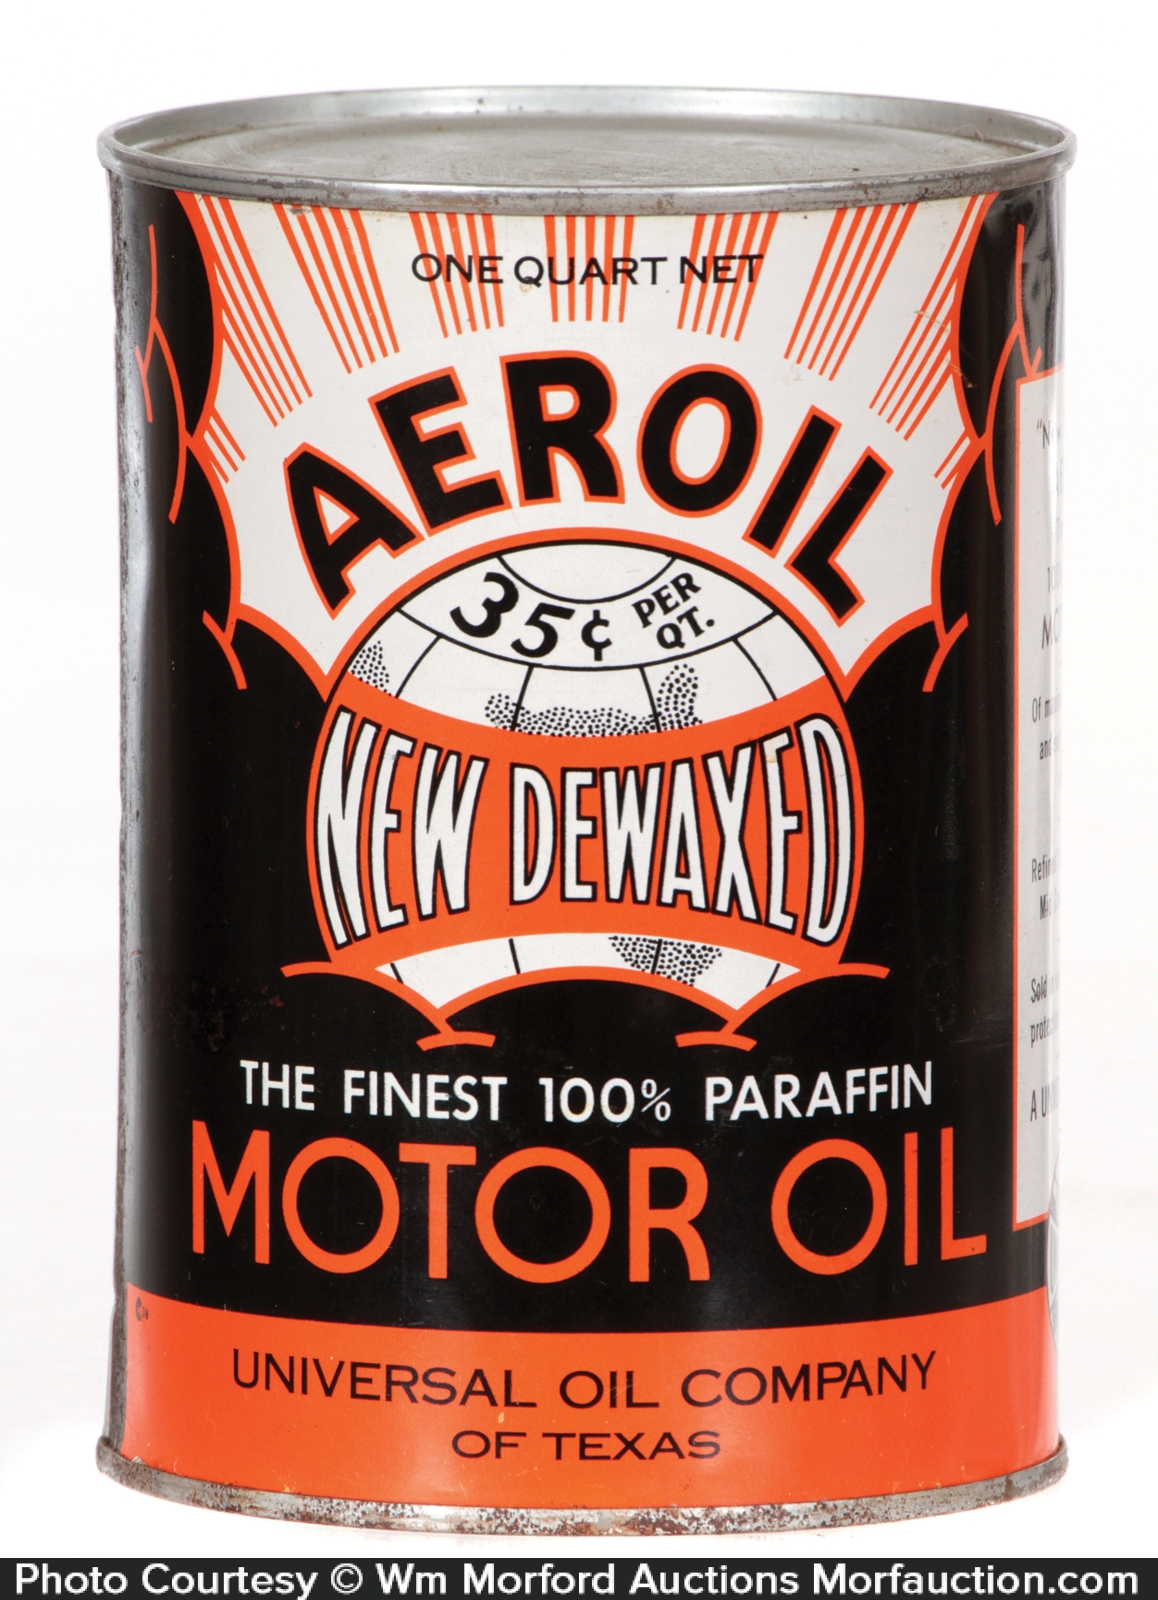 Antique advertising aeroil motor oil can antique for What is the best motor oil to use